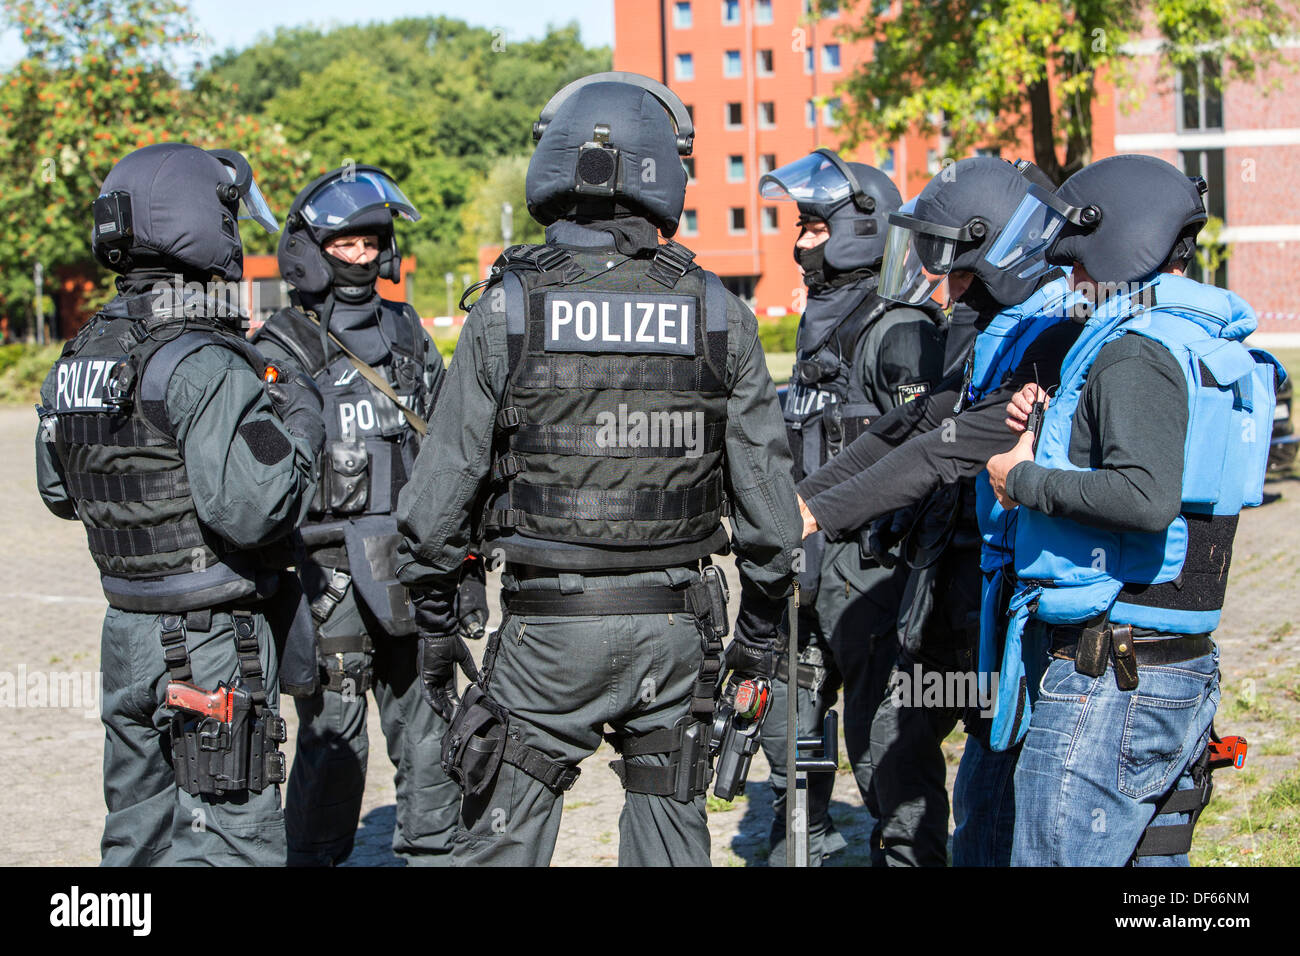 Police SWAT team exercise, rescuing of hostages. Special police forces. Hostage rescue team. Stock Photo